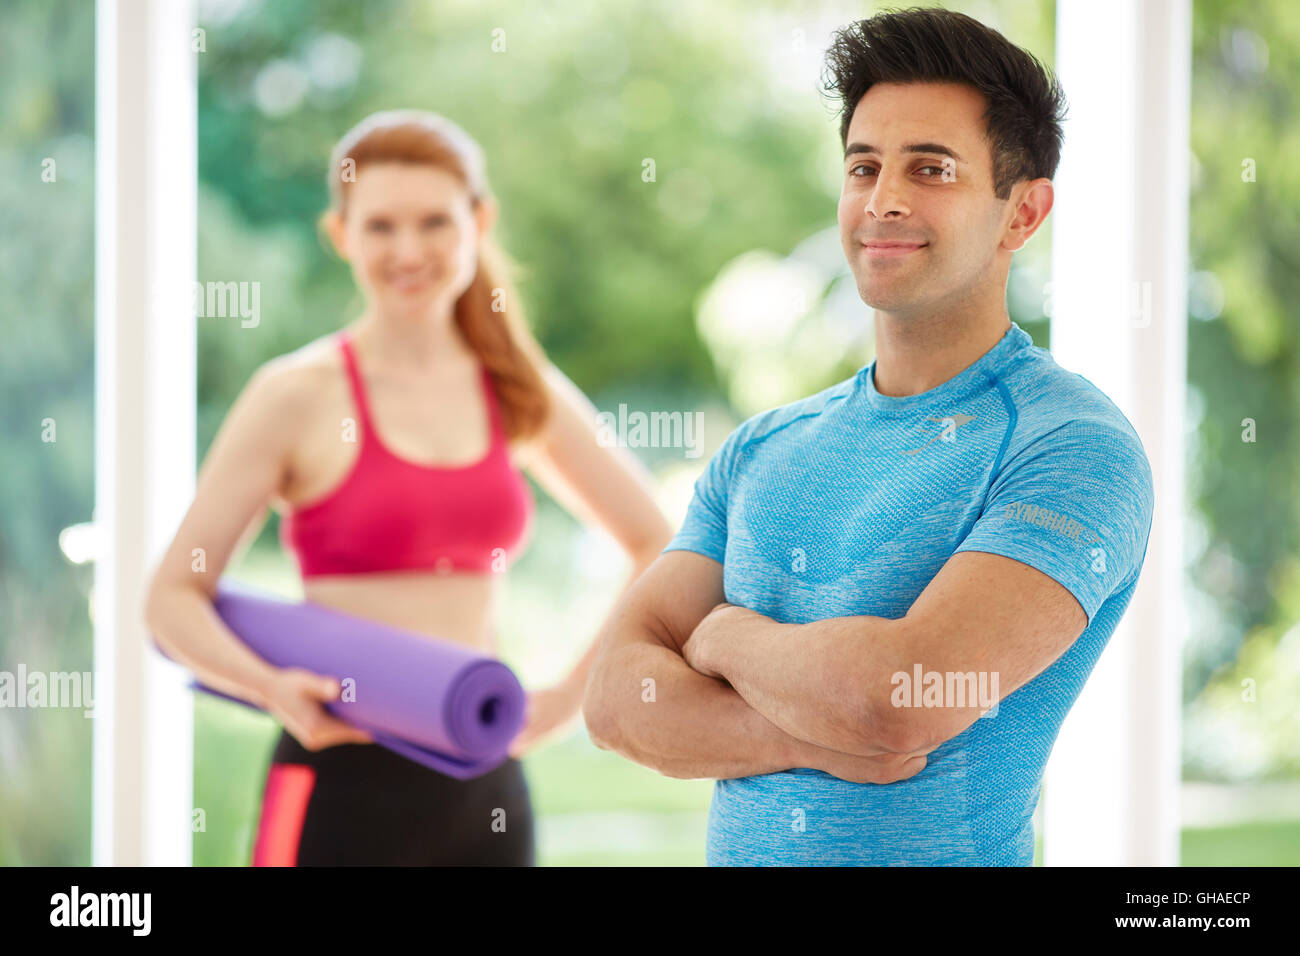 Couple stood together in gym - Stock Image